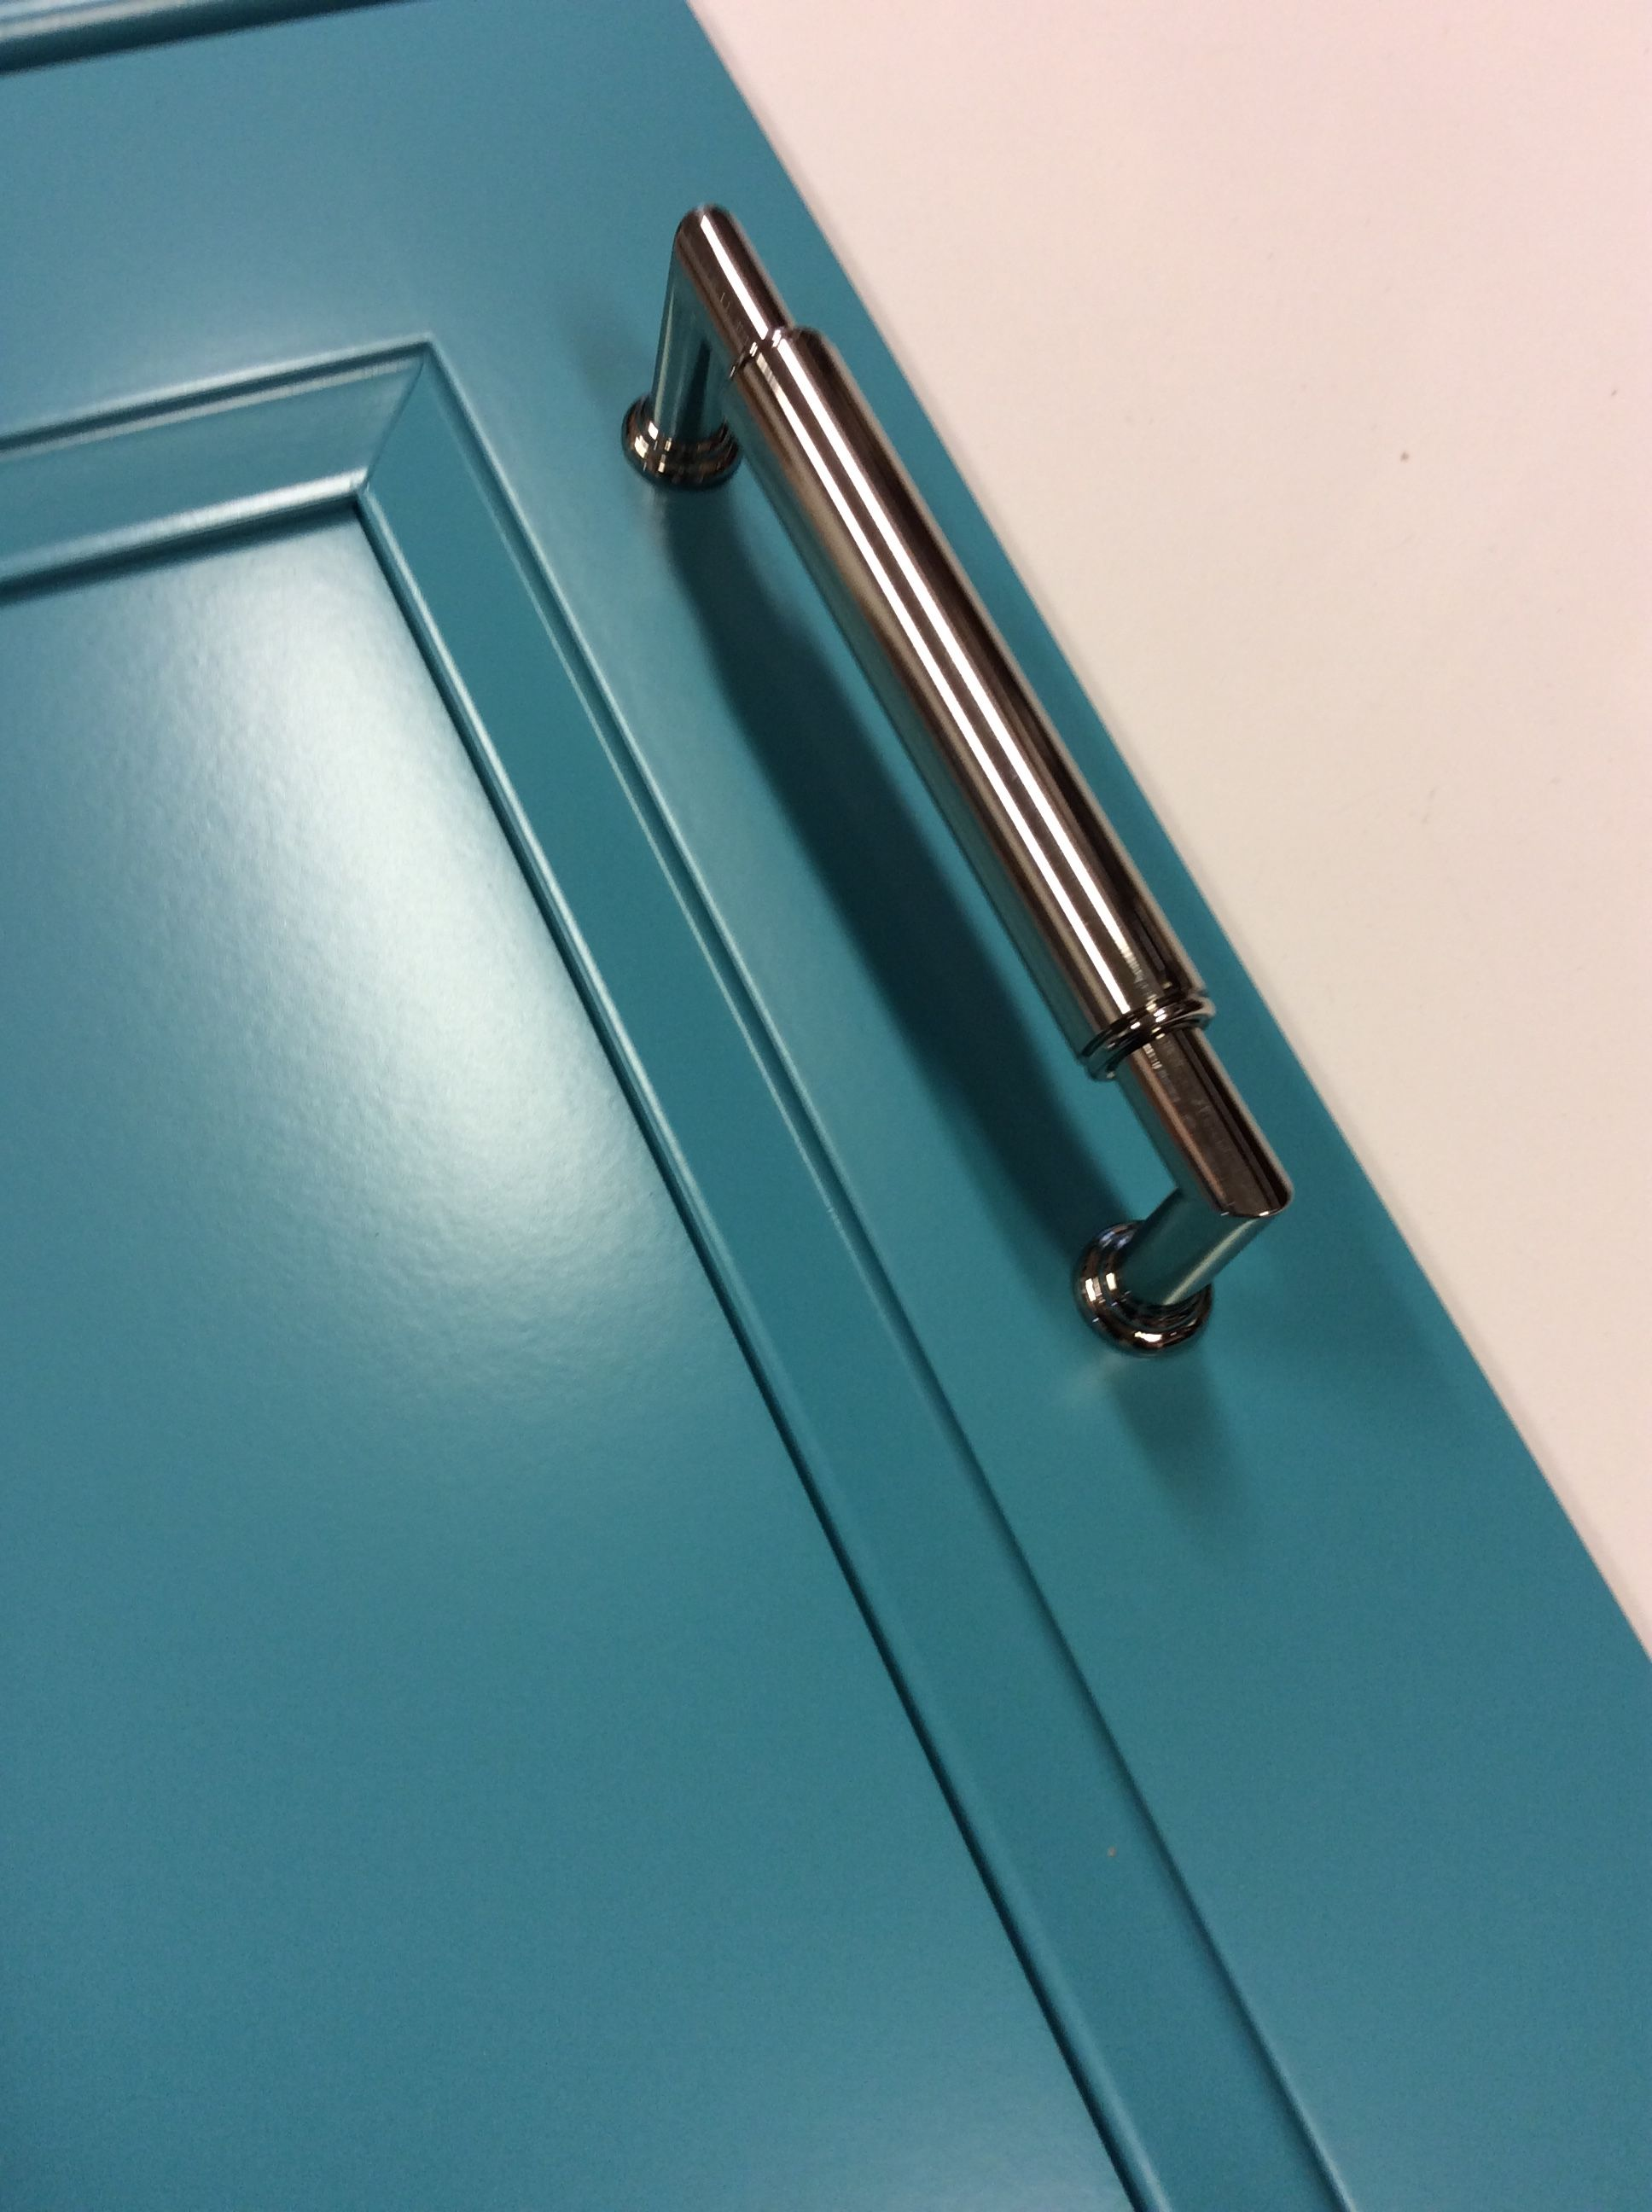 Pin by Ginny Padula on Gulfo Project Door handles, Home